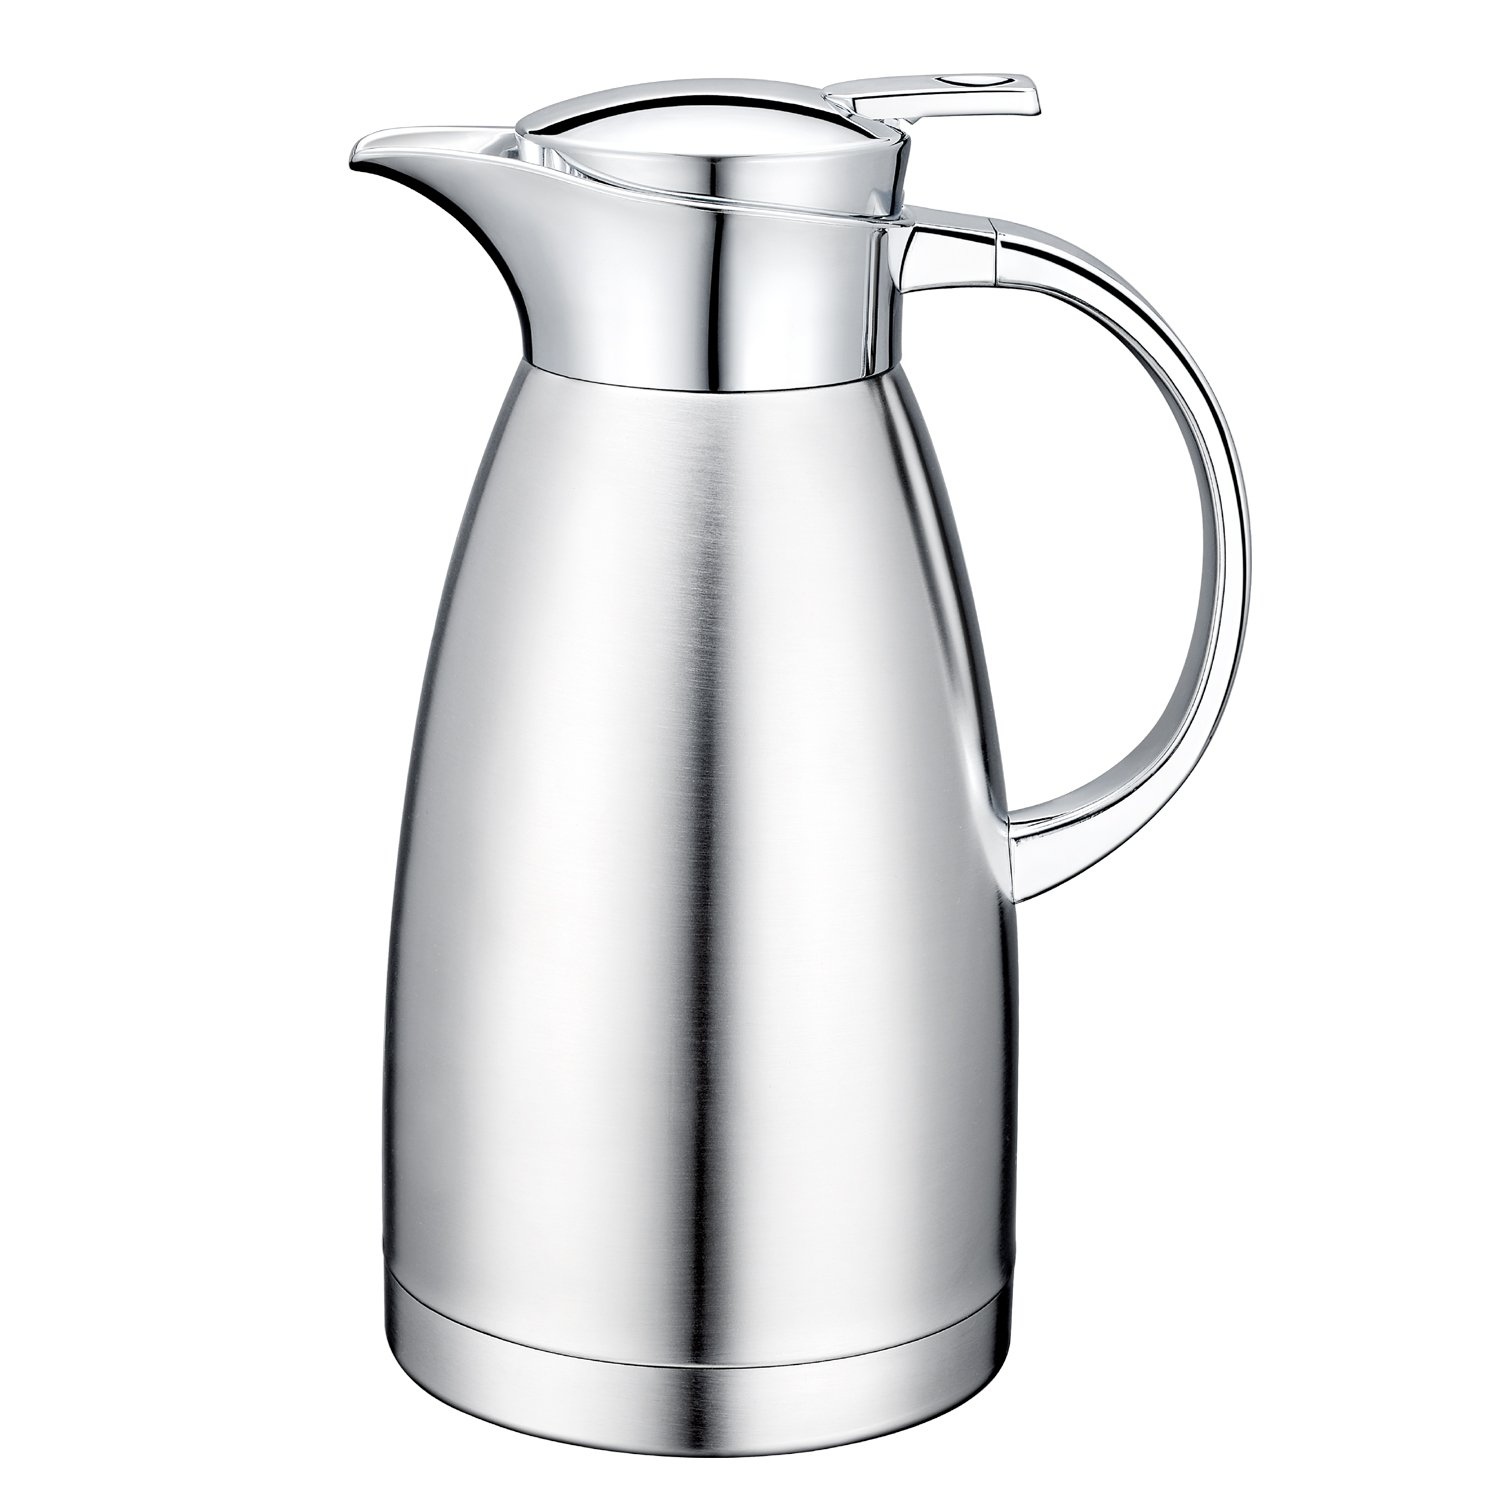 64 Oz 18/10 Stainless Steel Coffee Carafe Thermos Carafe Double Walled with press button Vacuum Carafe Insulated by Gabbay by Gabbay